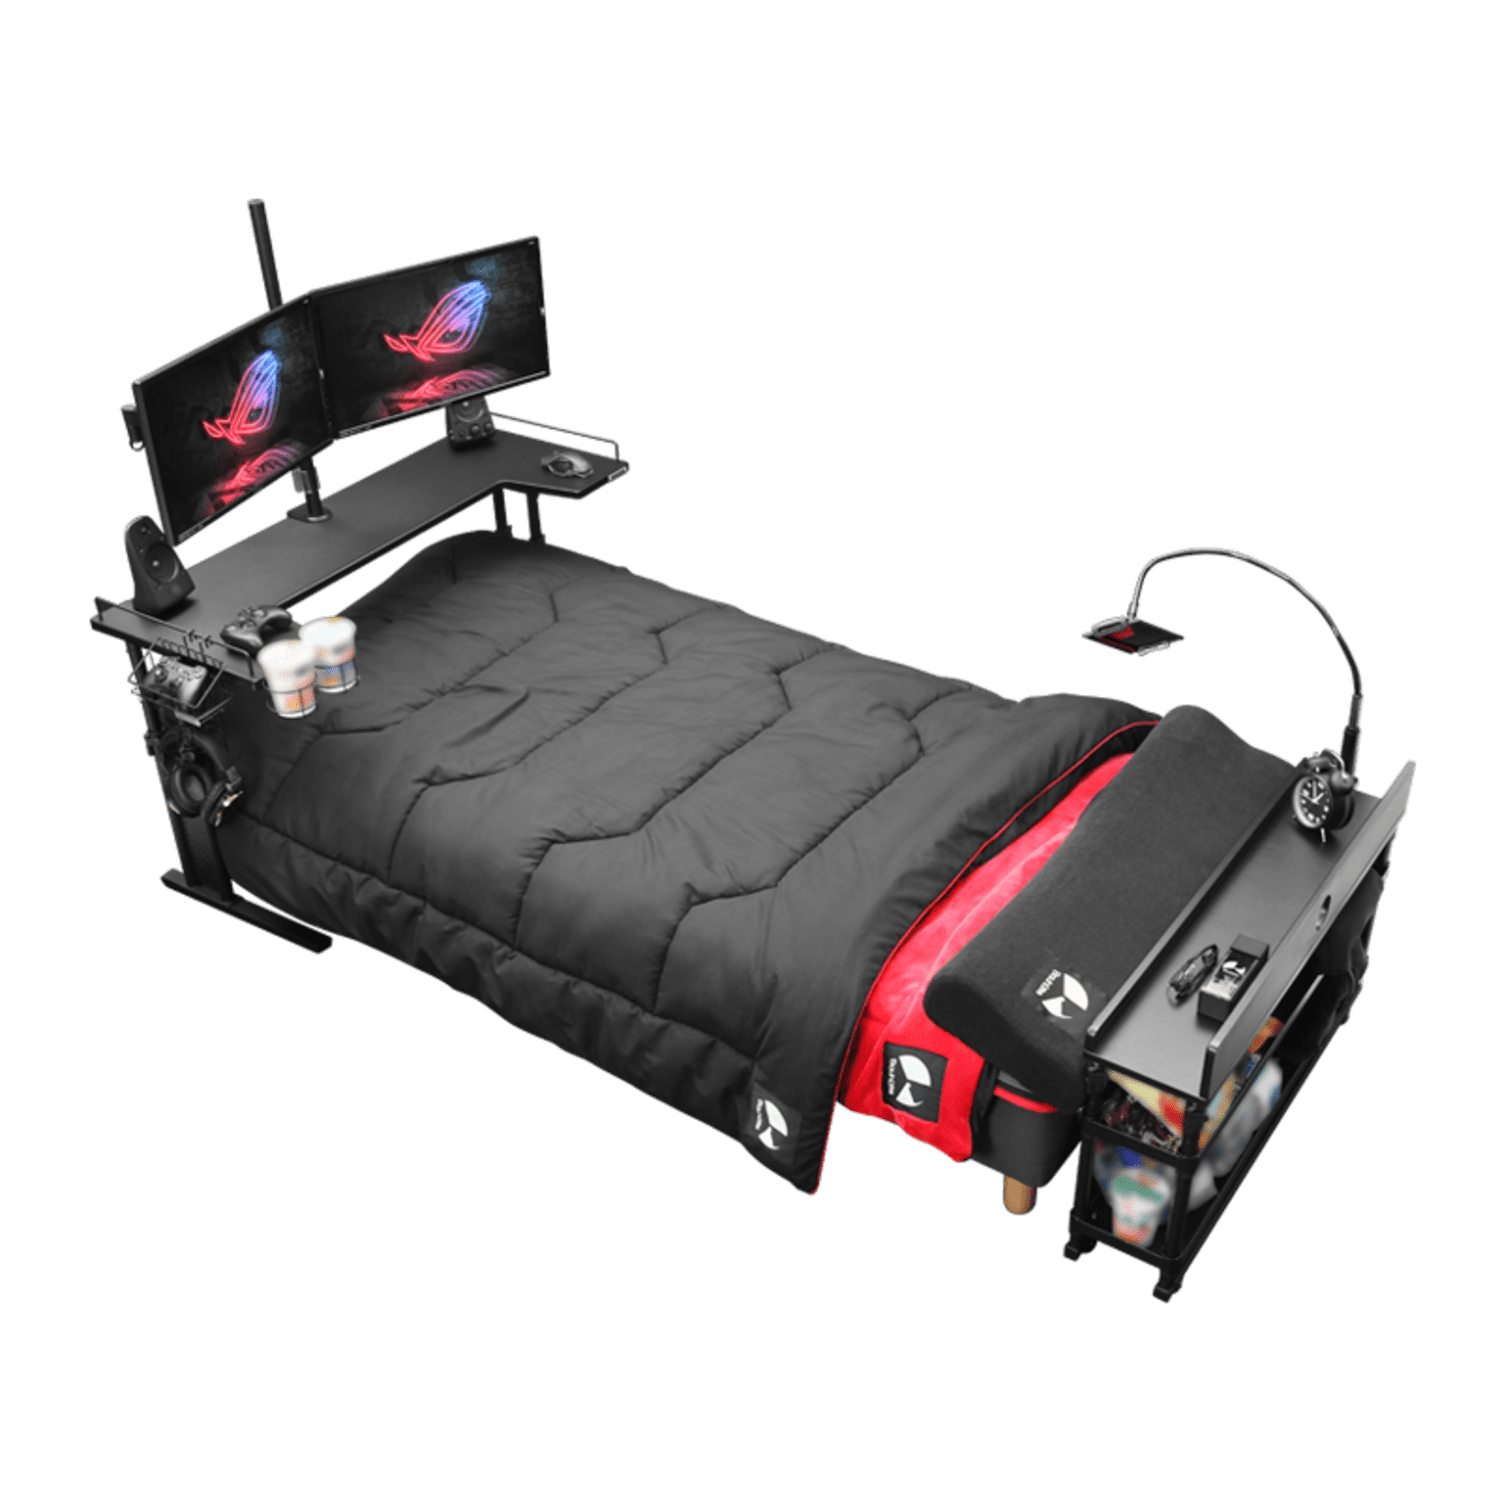 This Gaming Bed Doubles As a Home Office, So You May Never Need to Leave Your Bedroom Again